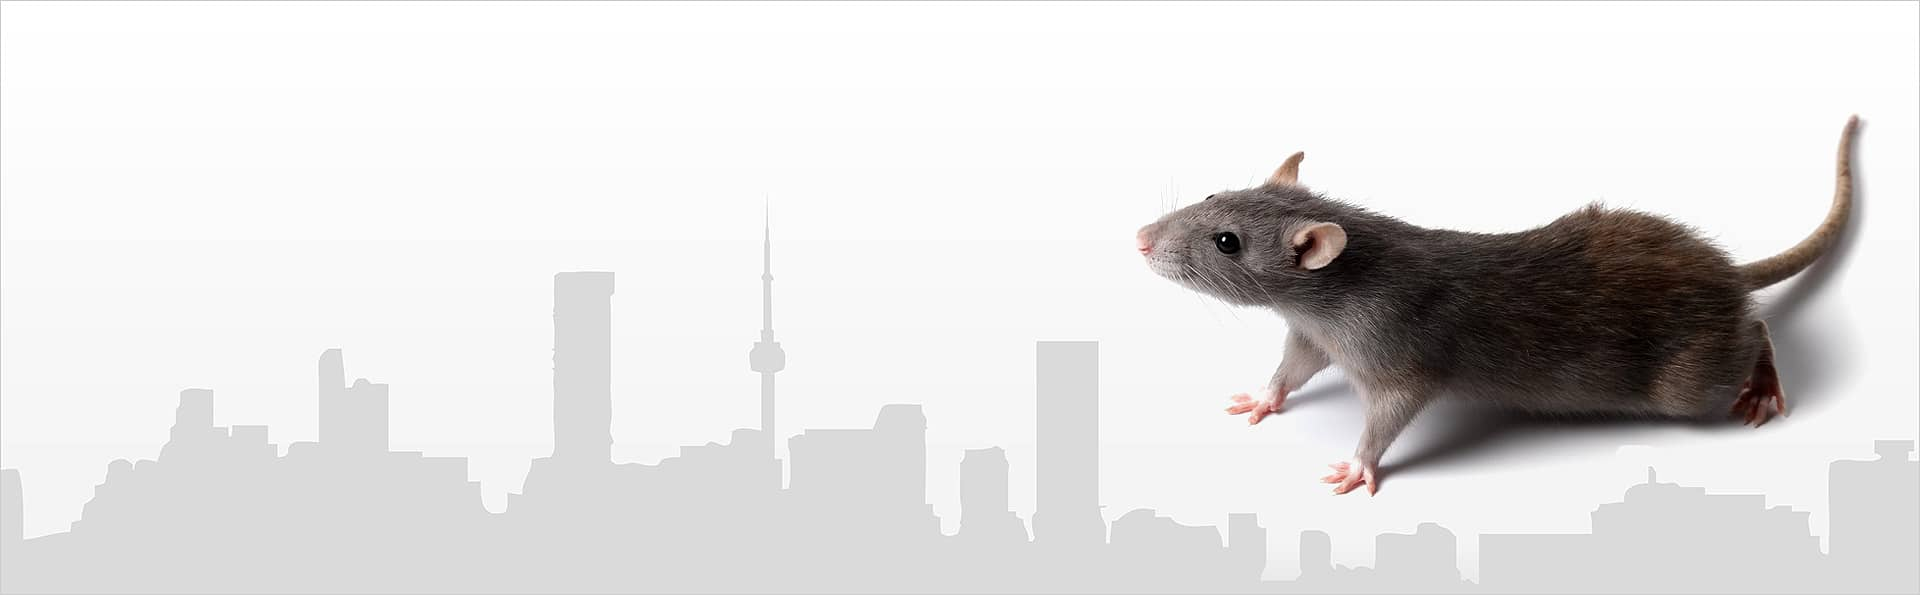 Mouse Control Toronto - How To Get Rid Of Mice - Mice